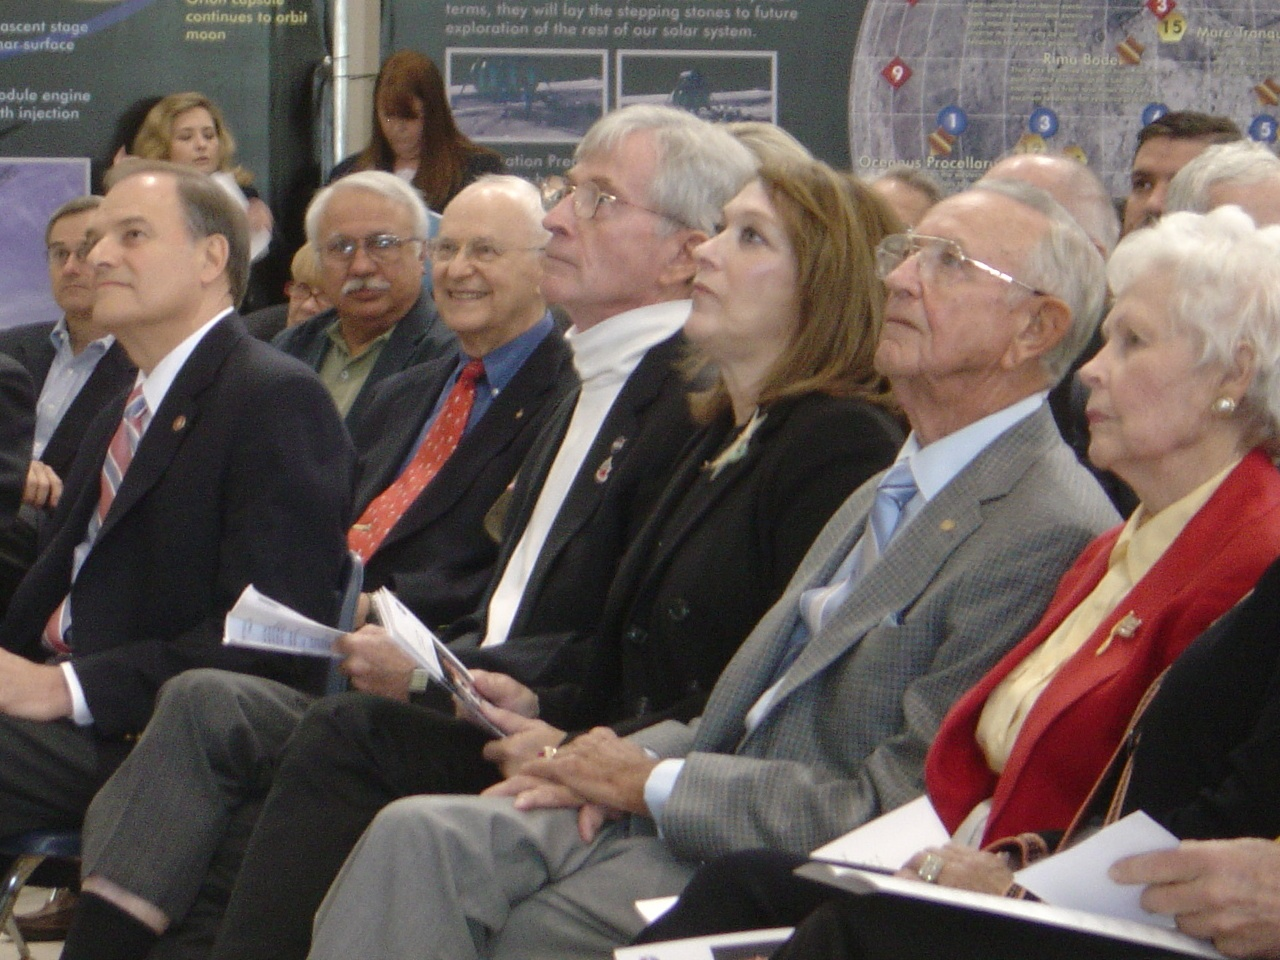 Kraft and his wife at the Saturn V exhibit opening in 2007. Also visible in the image are moon walkers John Young (white turtleneck) and Al Bean (red tie).